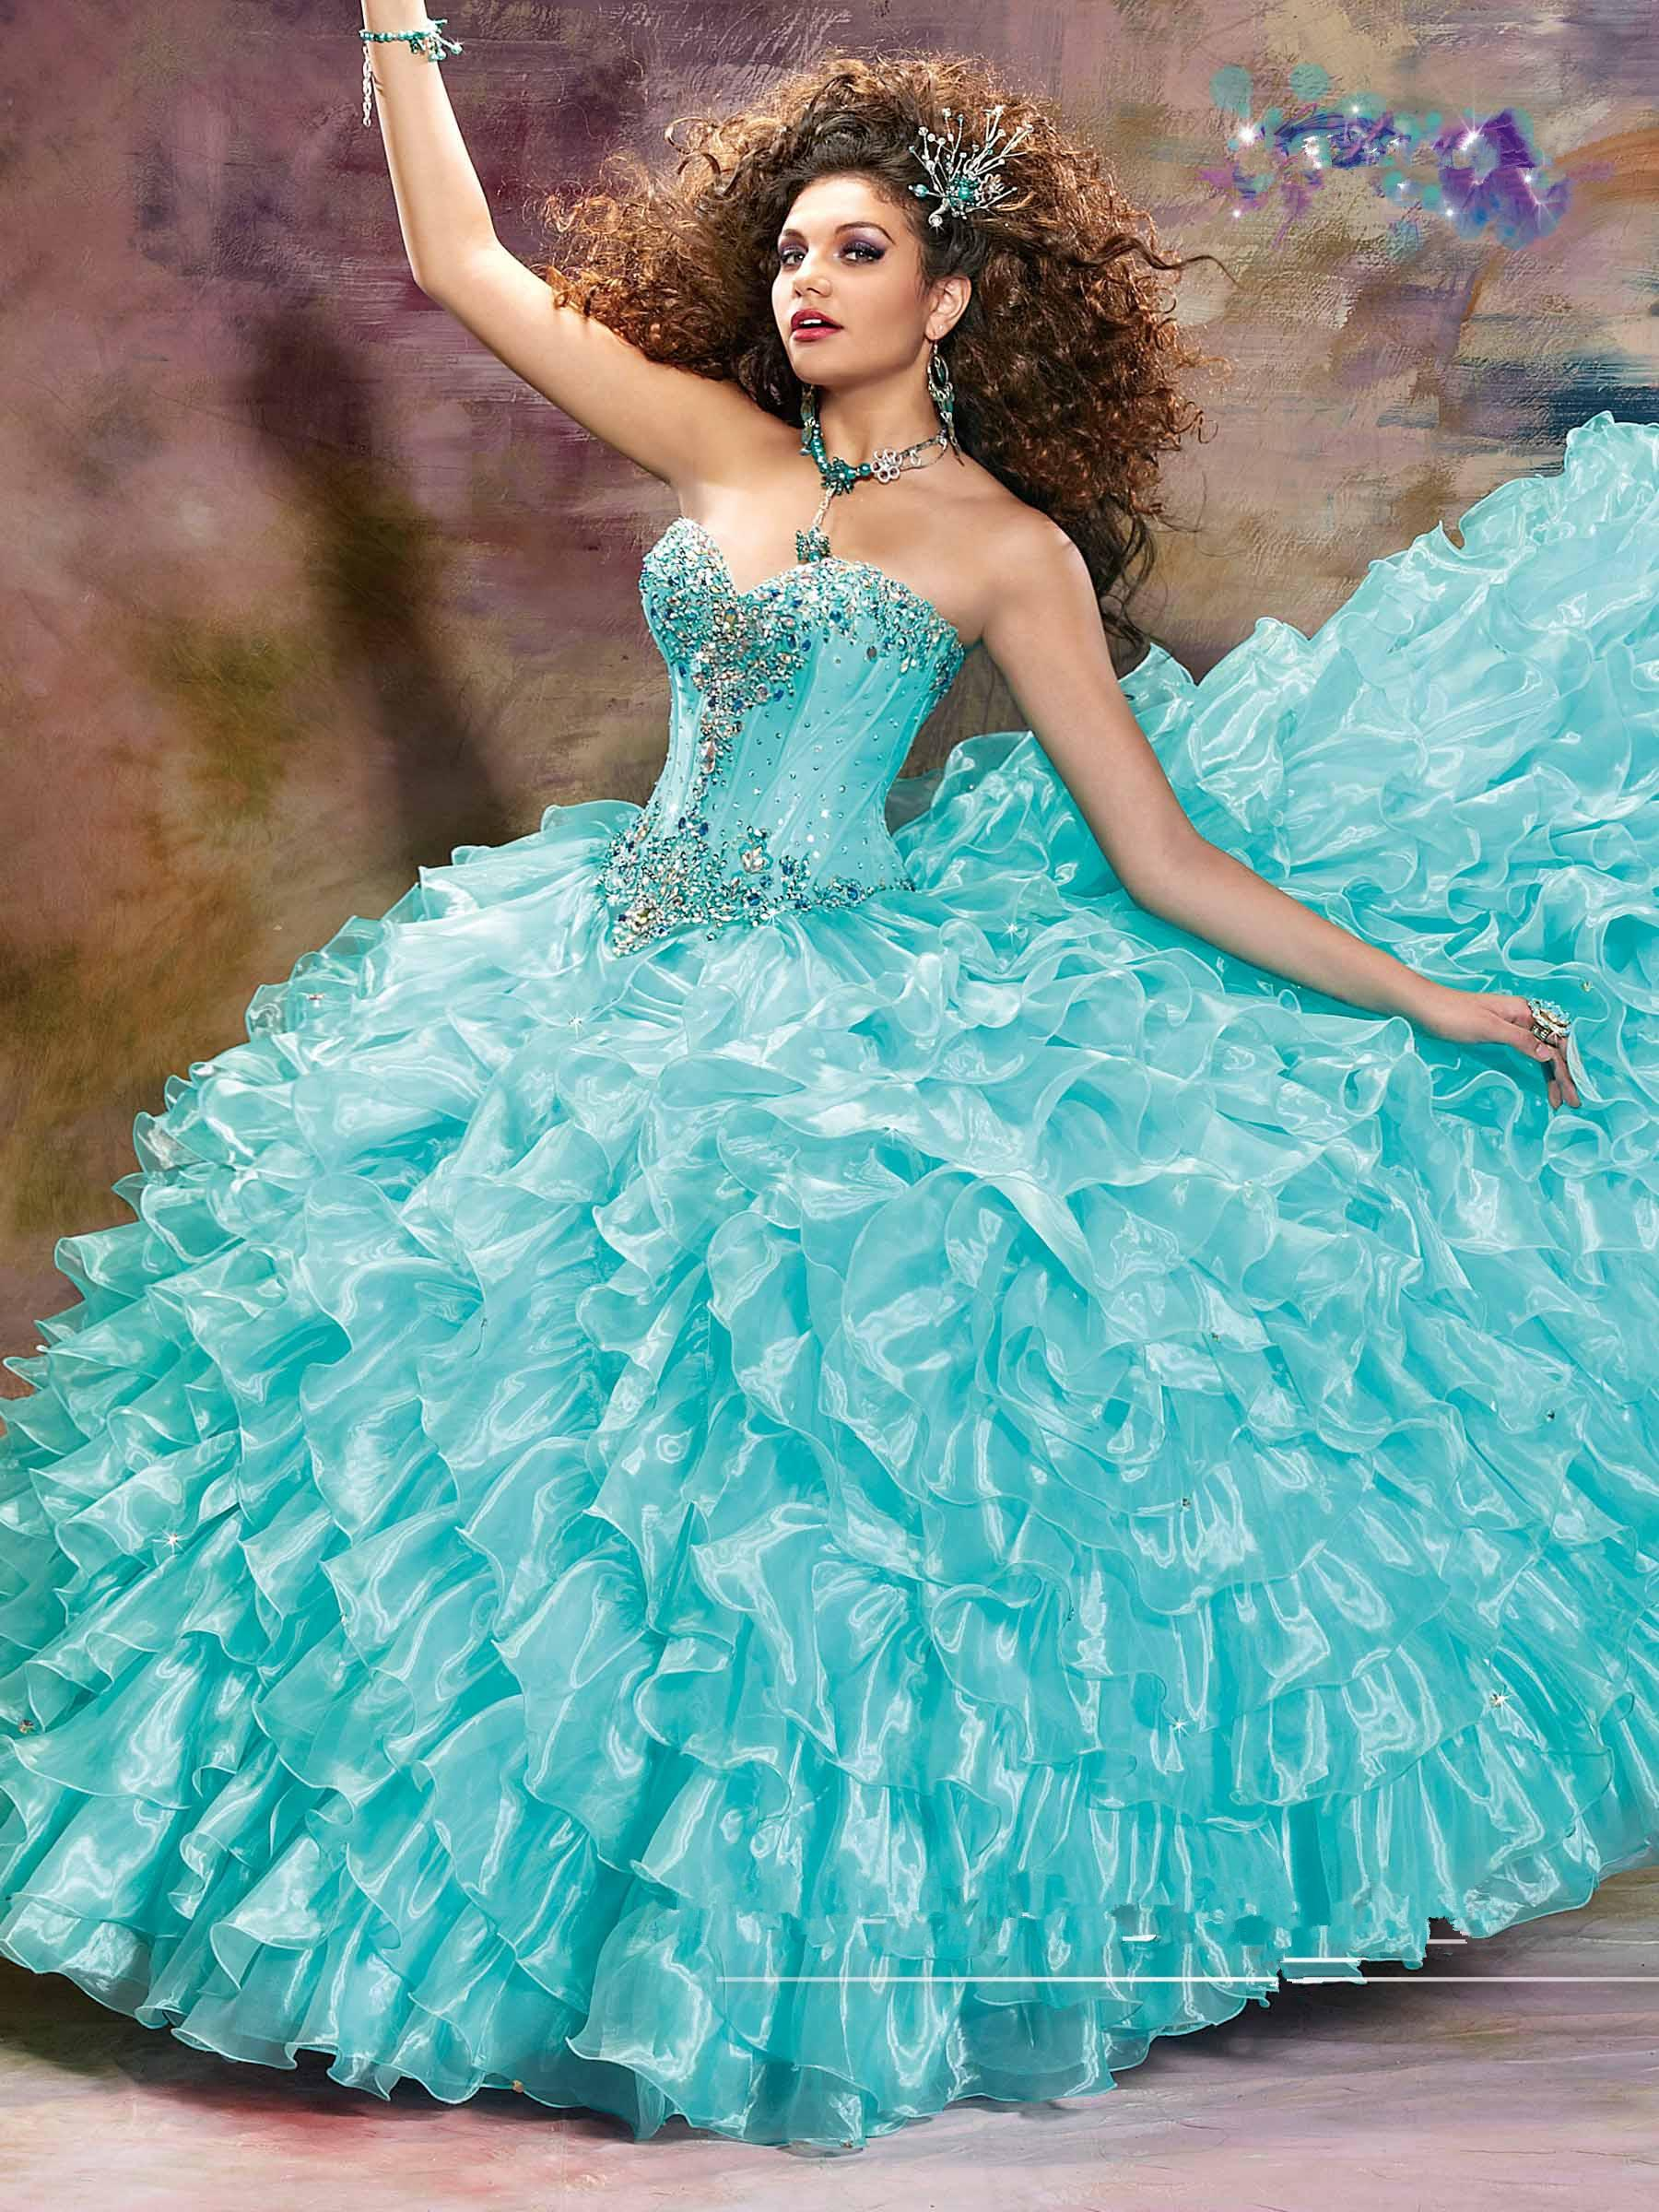 Quinceanera Dresses Fishbone Sweet 16 Girls Pageant Dress Ruffle Organza Ball Gown Birthday Party Dress Floor Length Prom Dress